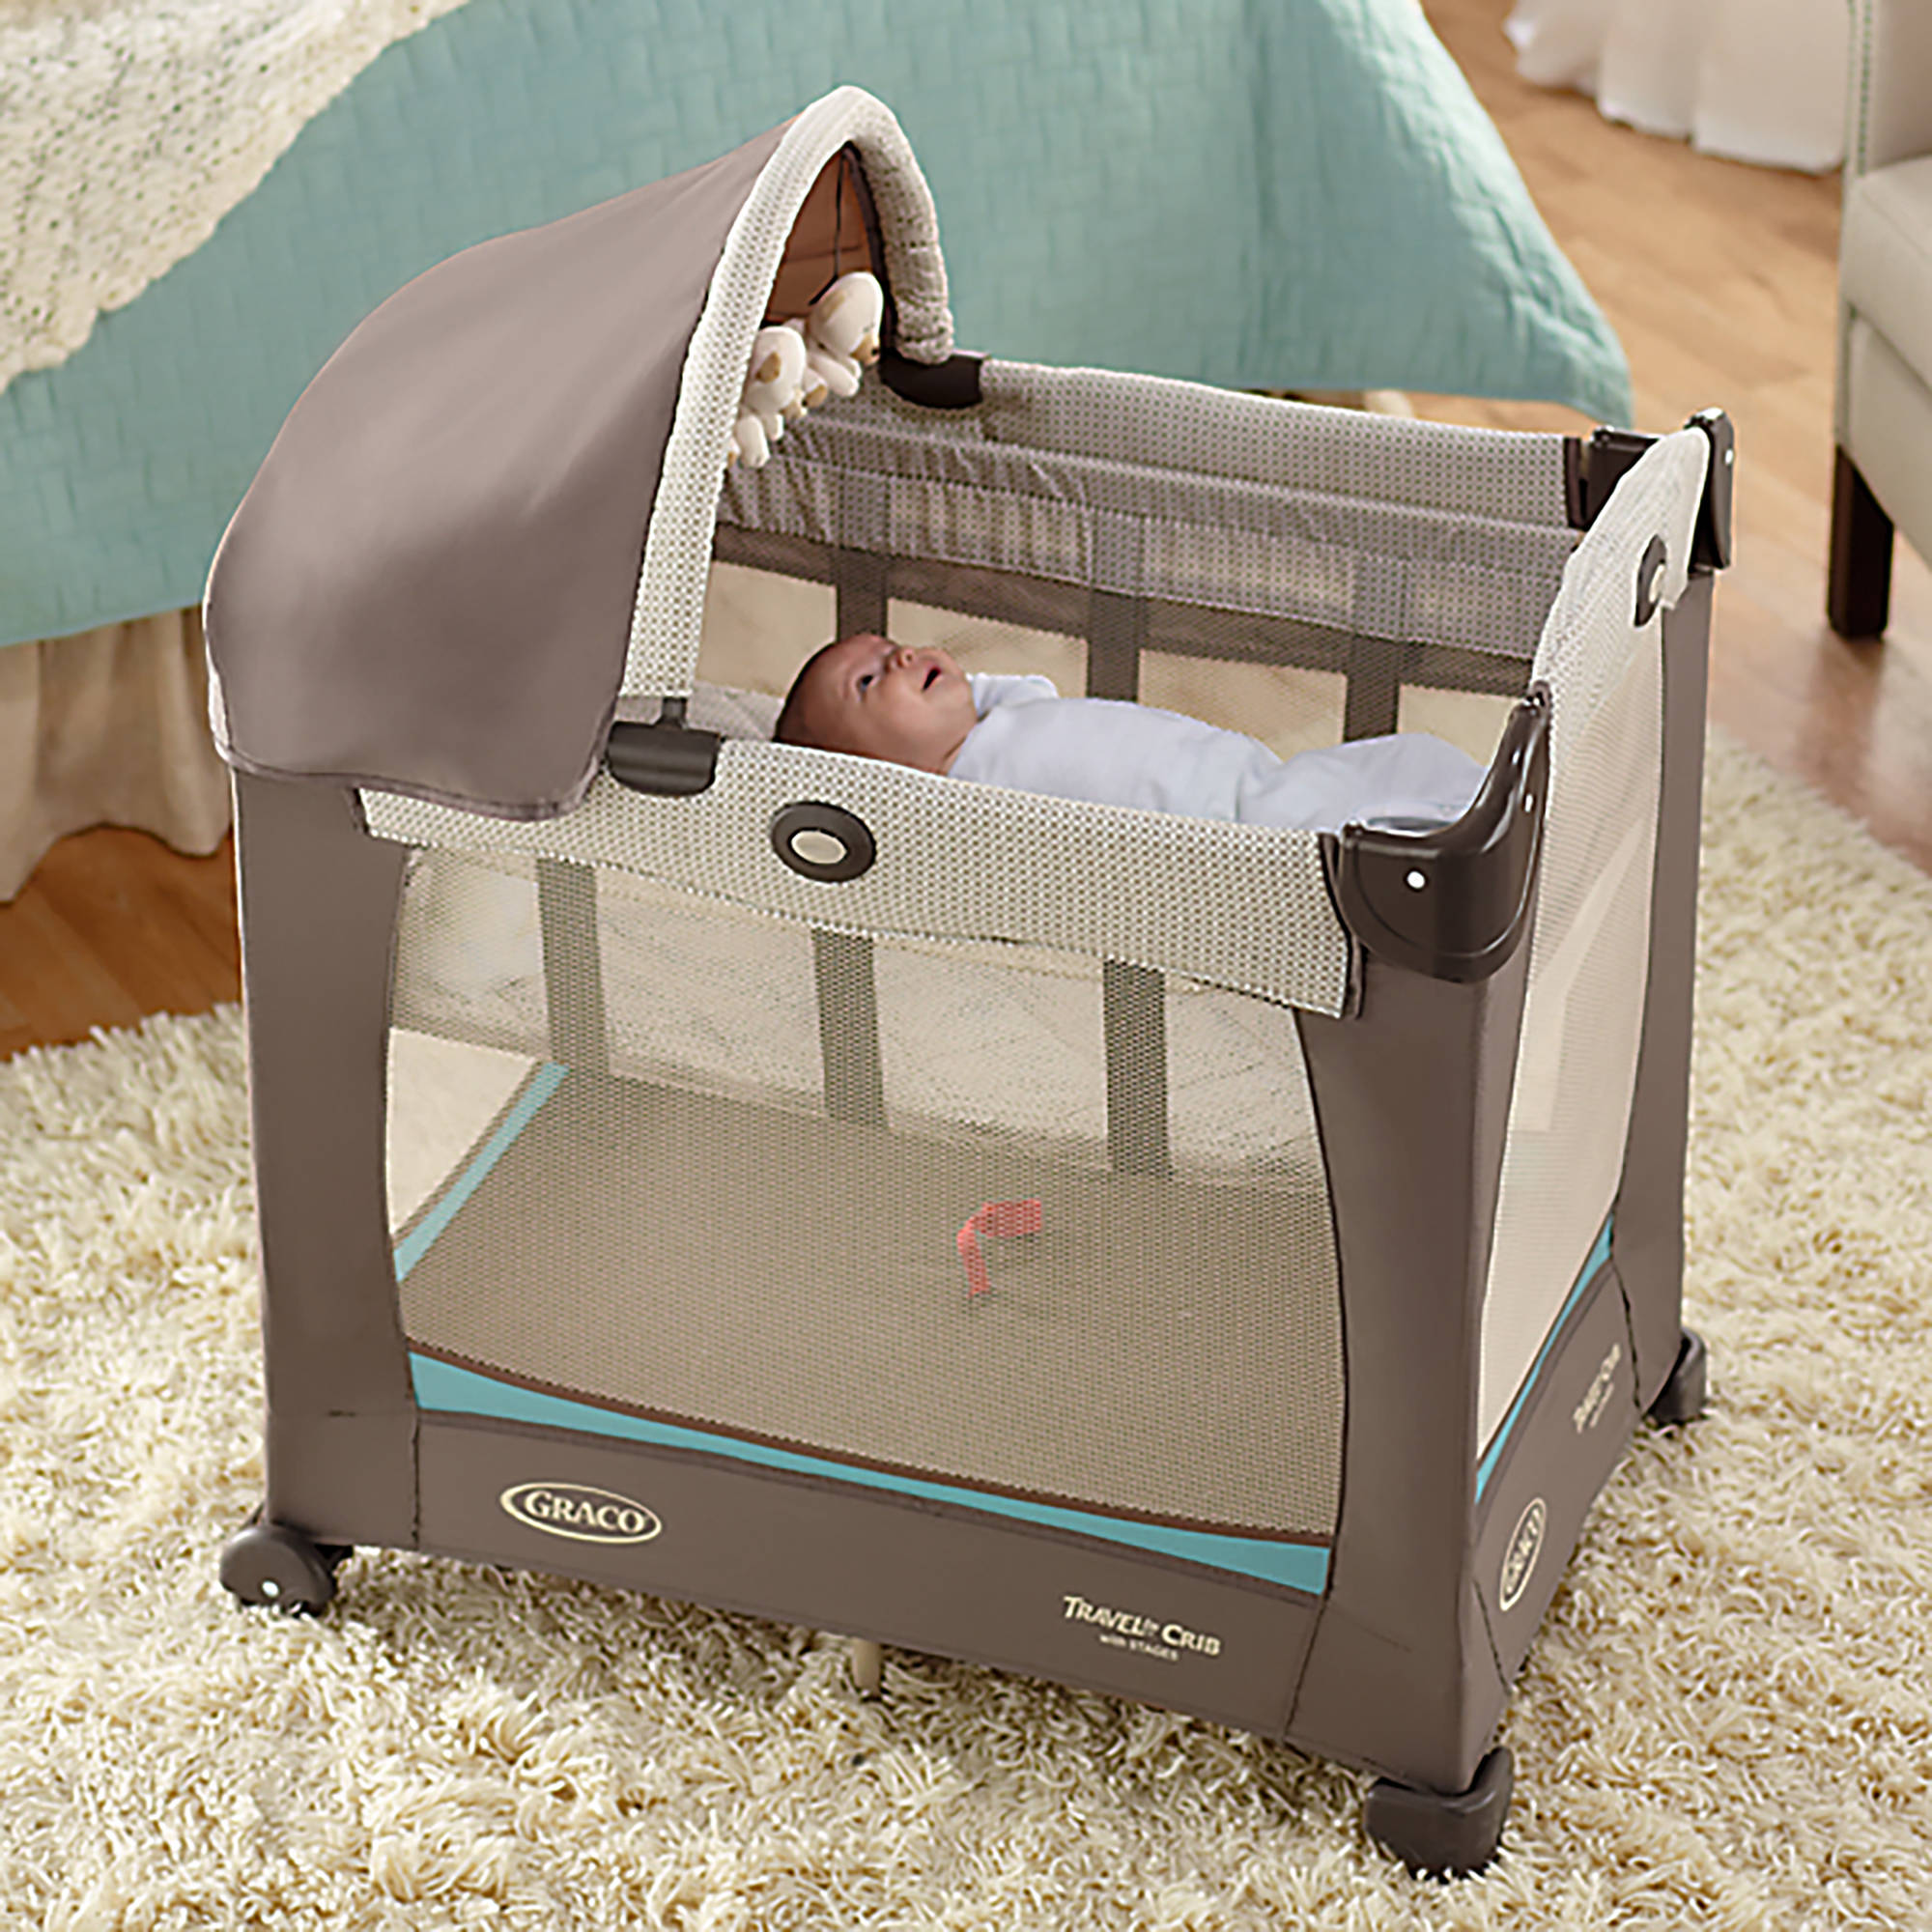 Graco Travel Lite Portable Crib, Winslet   Walmart.com